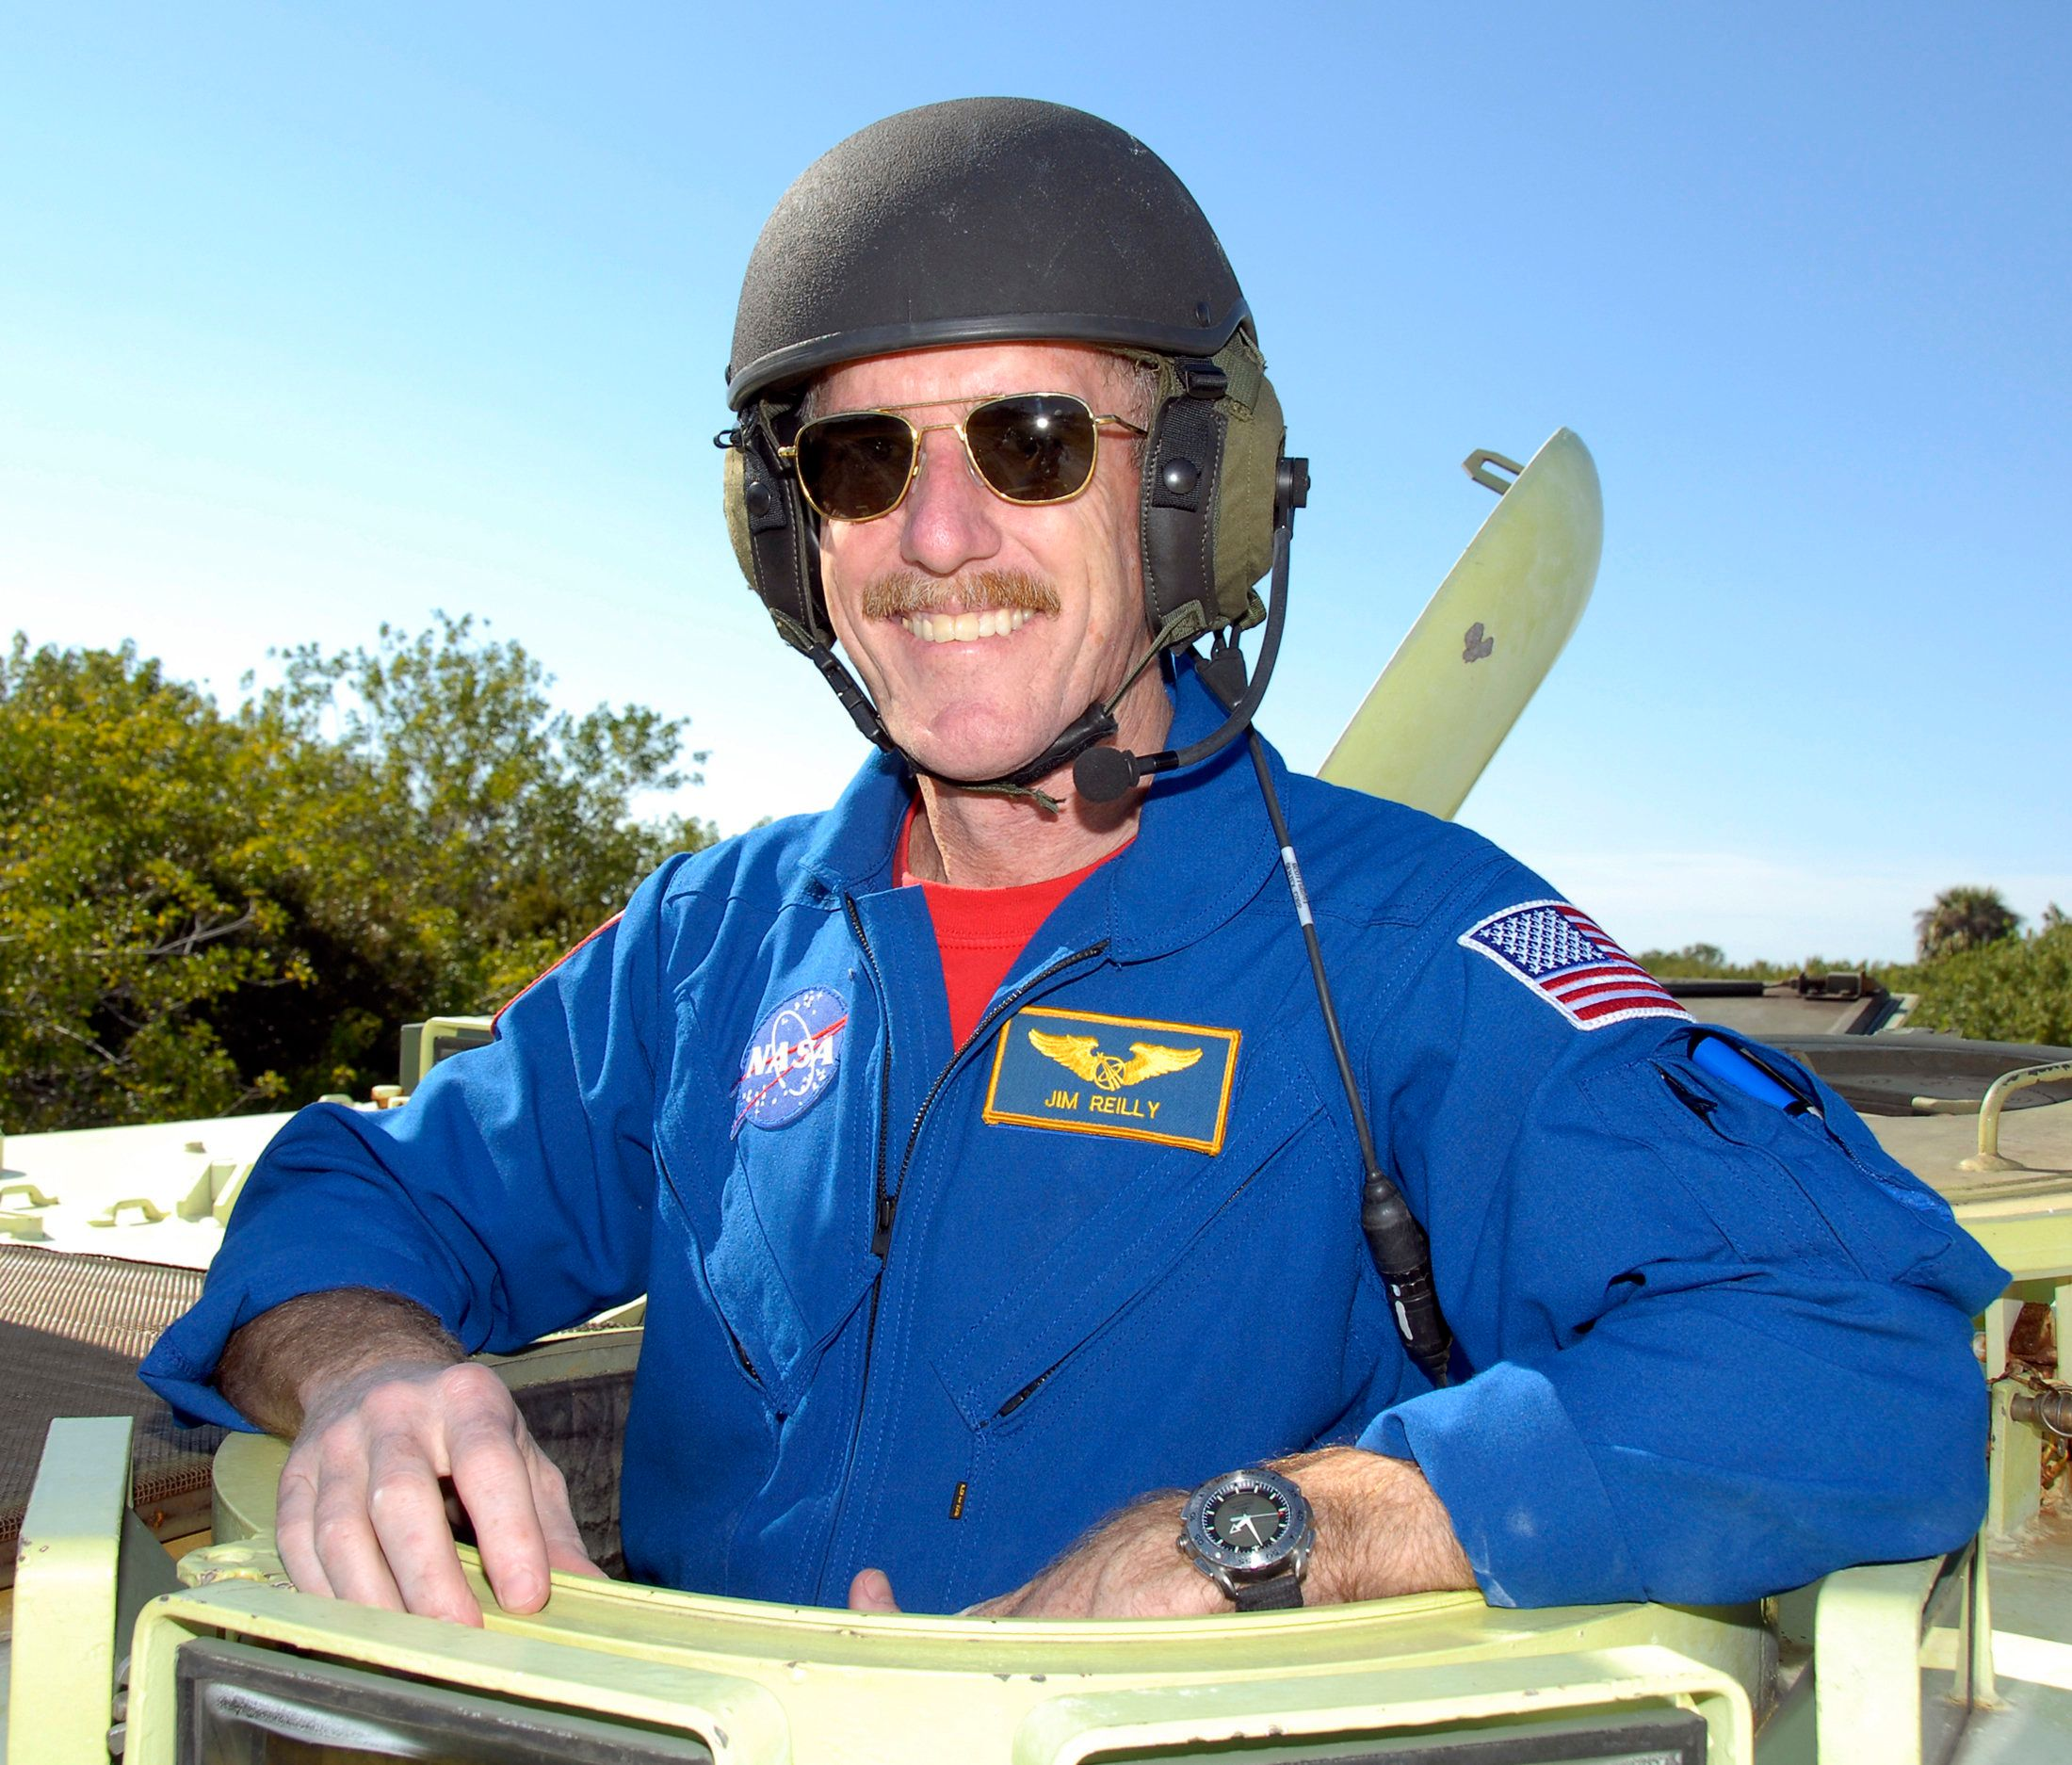 Mission specialist James Reilly ll poses for a photo after driving the M-113 armored personnel carrier at the Kennedy Space Center, Cape Canaveral, Florida, February 22, 2007. The crew of the space shuttle Atlantis arrived  at  Kennedy Space Center  for a dress rehearsal launch countdown.  Atlantis is scheduled to launch in early March with a crew of six on a 11-day mission to the International Space Station.  FOR EDITORIAL USE ONLY   REUTERS/NASA Kim Shiflett  (UNITED STATES)